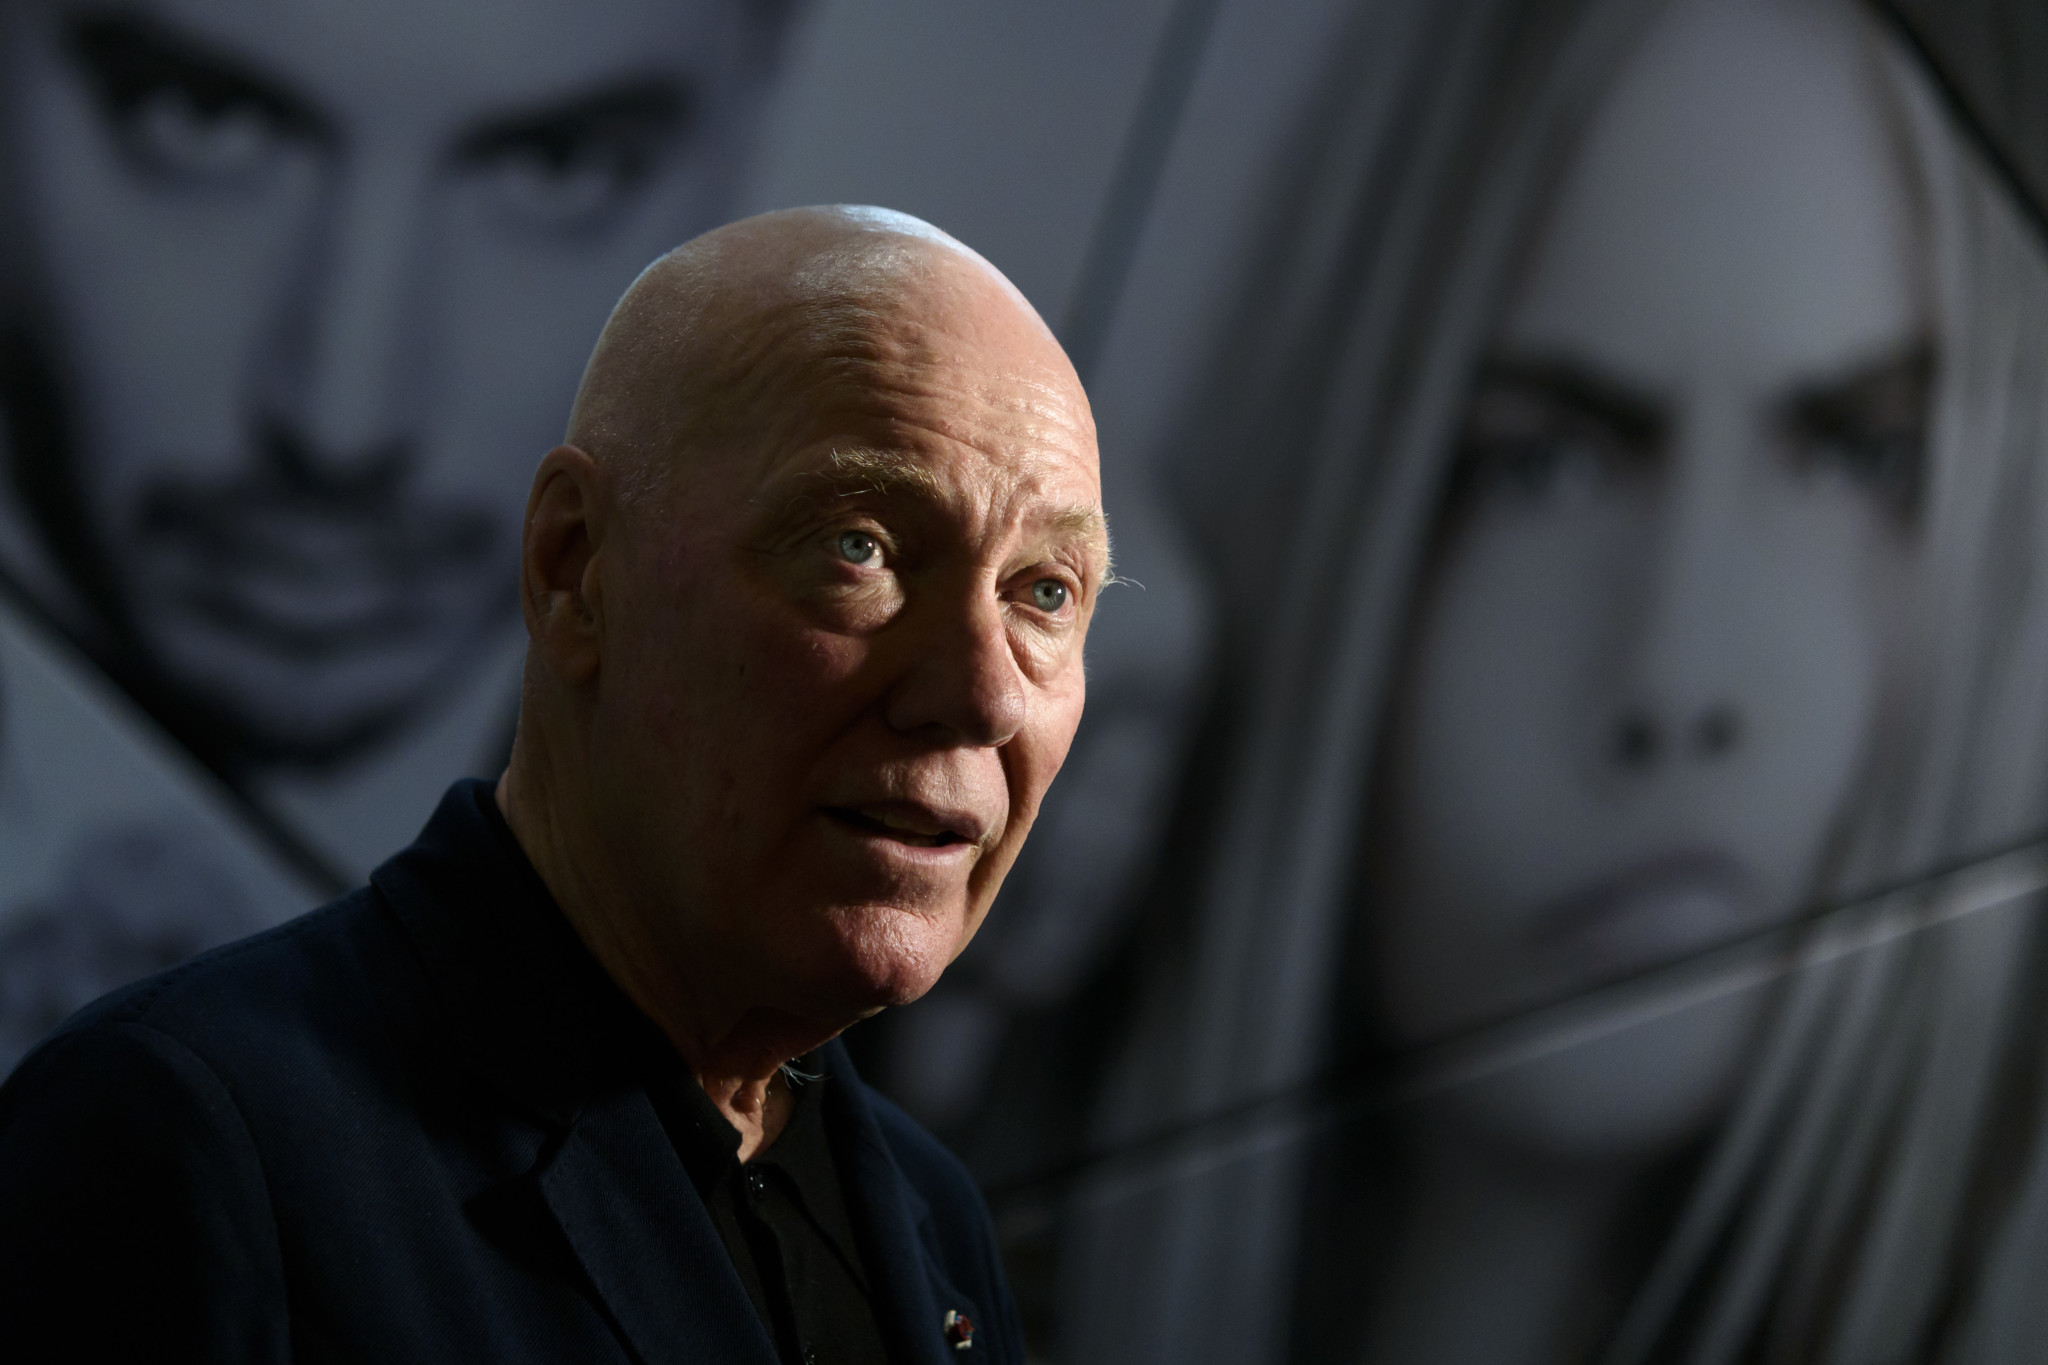 The President of LVMH Watch Division and TAG Heuer CEO, Jean-Claude Biver, says customers will shape the future of retail.